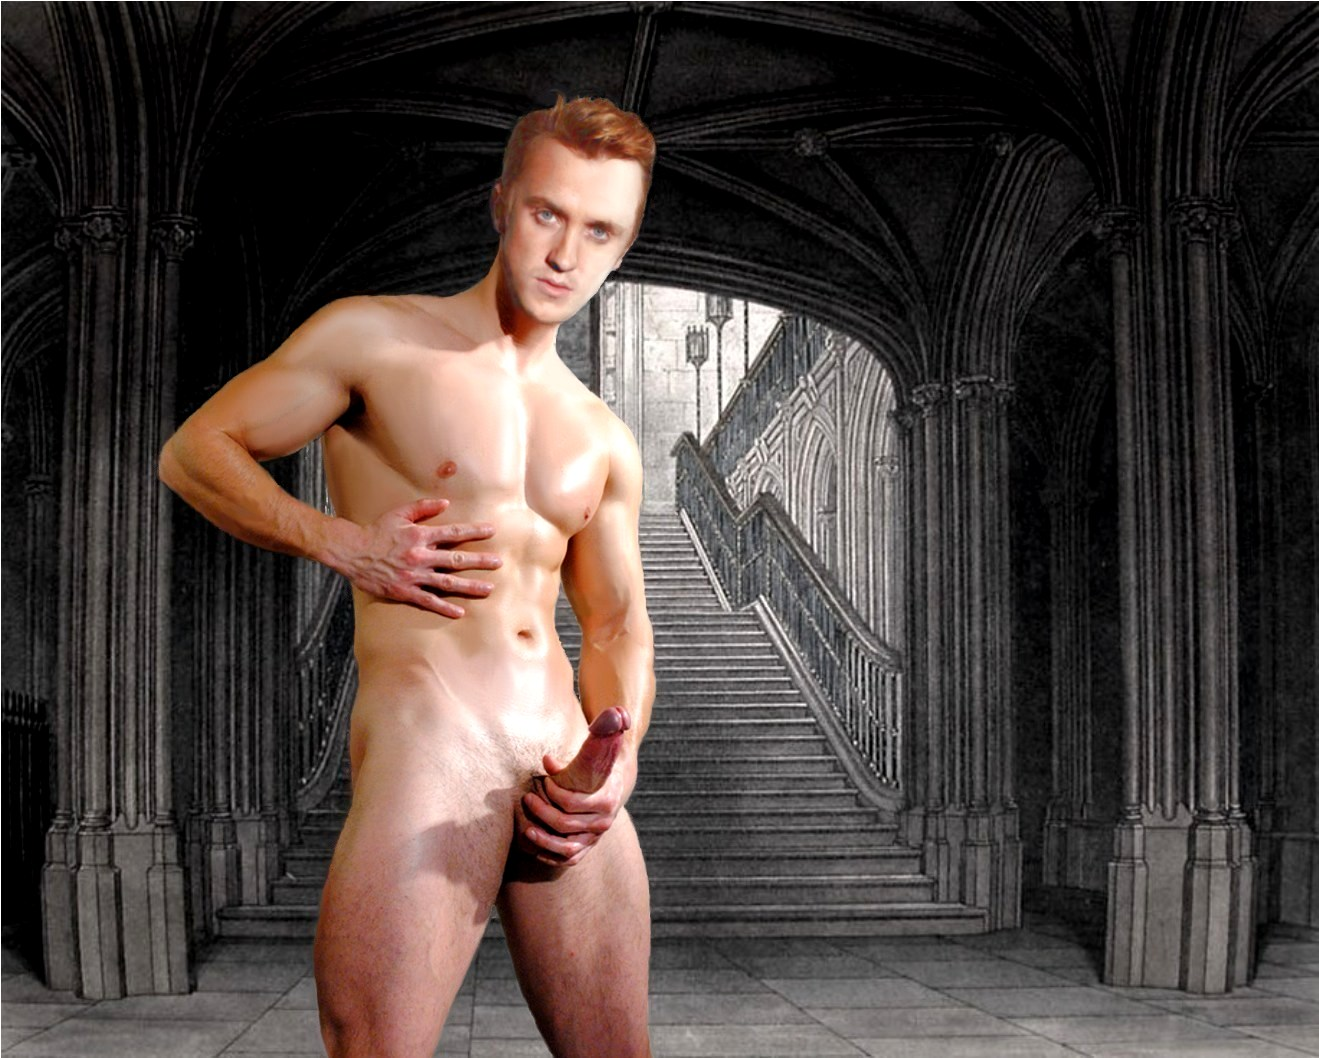 from Layne photos tom felton nude